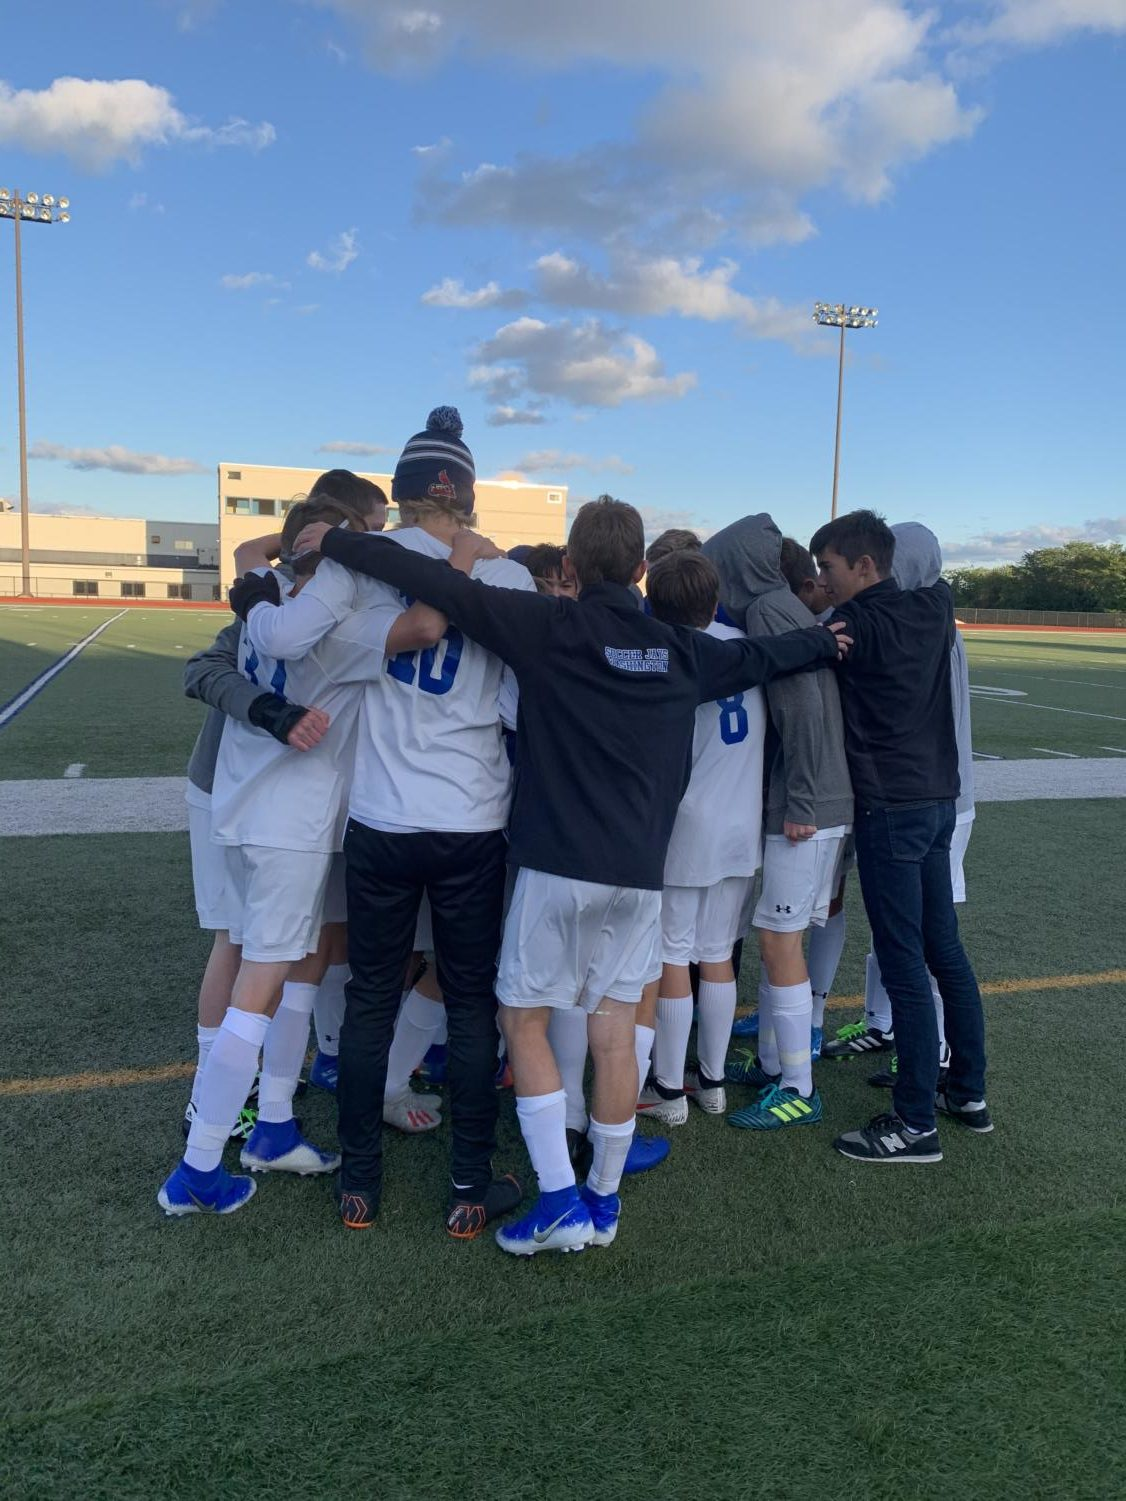 The JV soccer team breaks out after the first half of their game at Borgia High School Oct. 11. The Knights won 2-0.